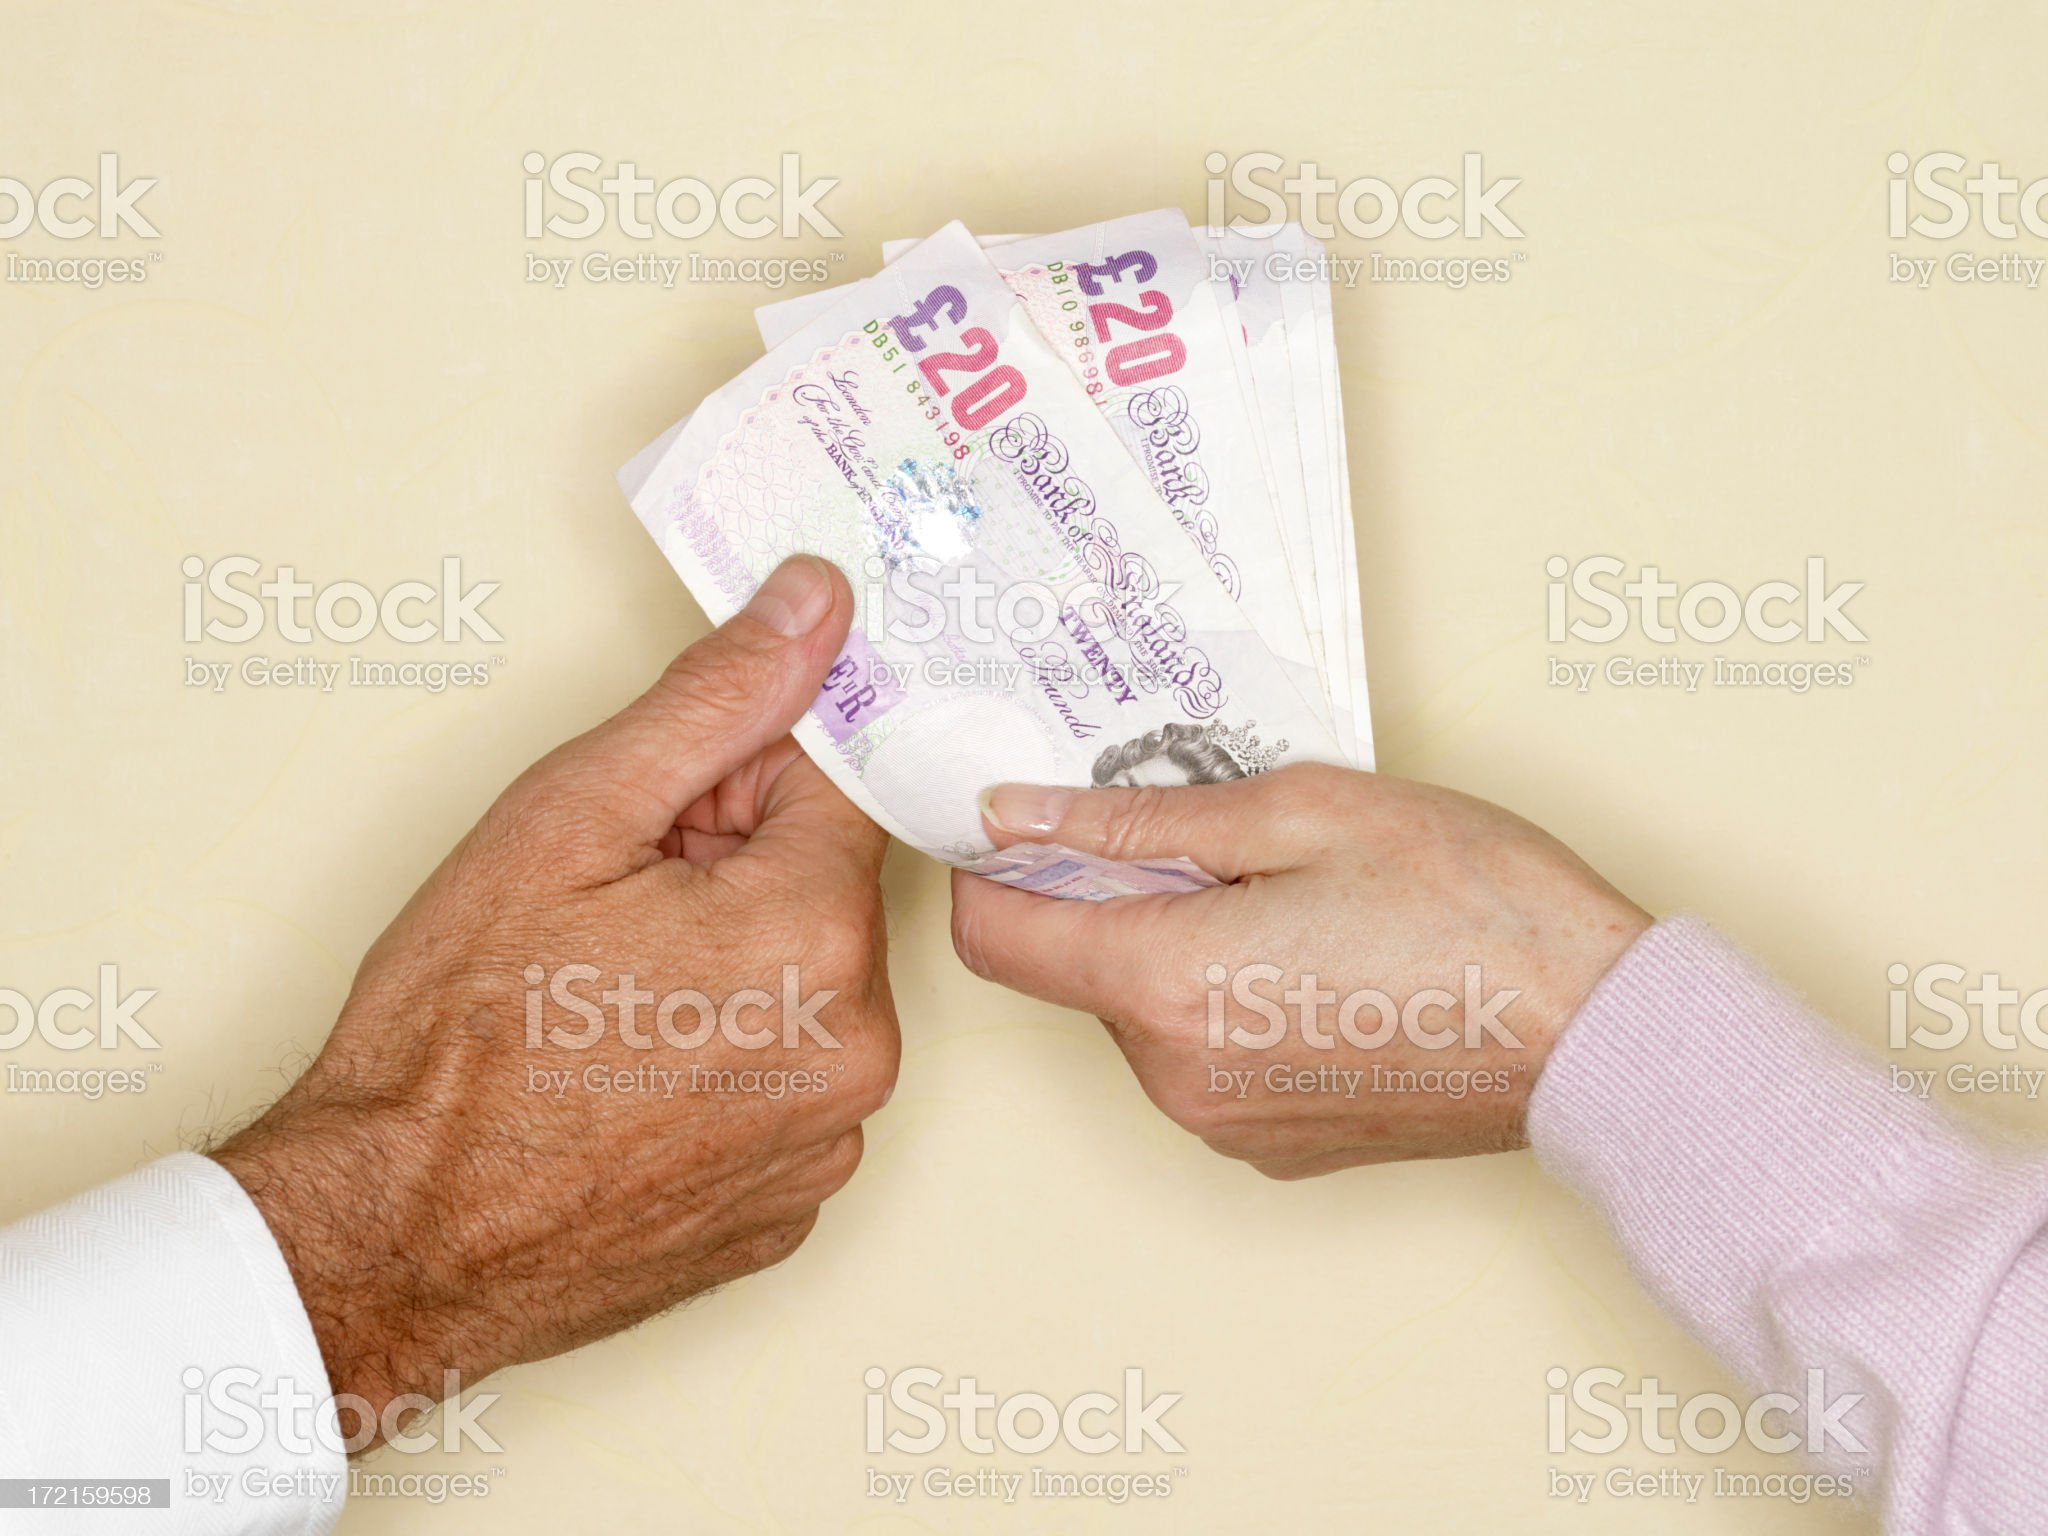 Sterling Banknotes royalty-free stock photo